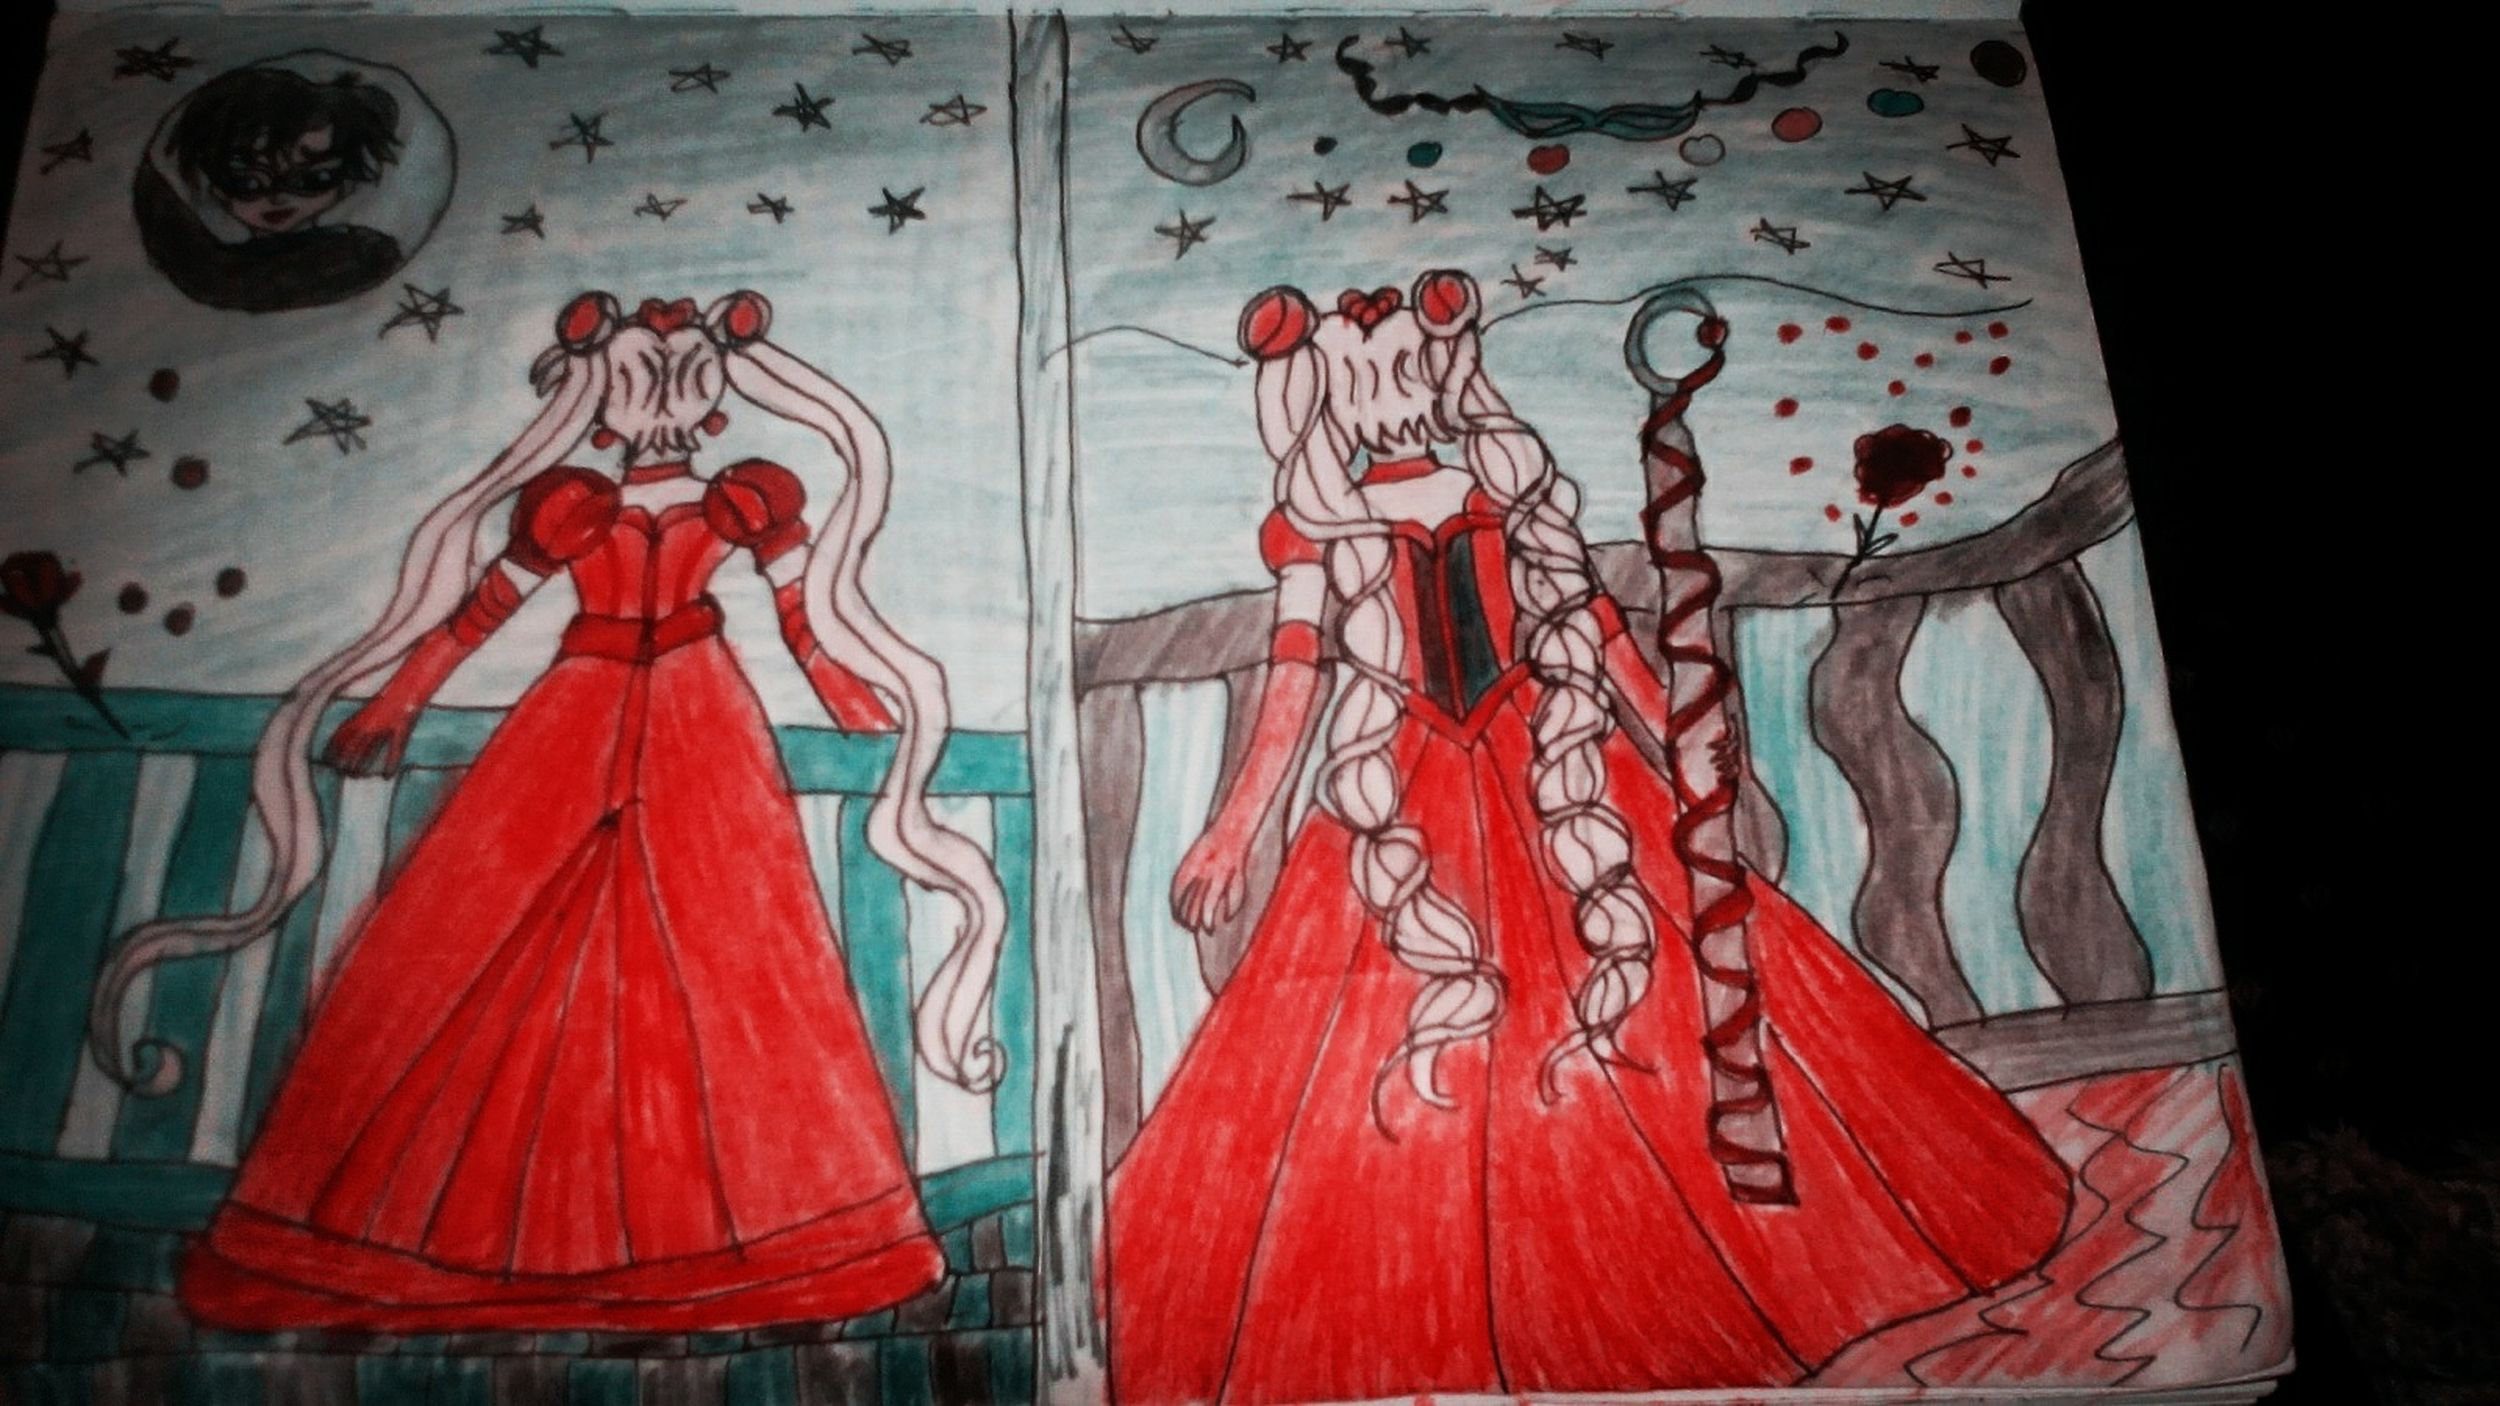 Beforeearth Drawing Seilor Moon Seilormoondraws Seilormoonseries Serenity Endimon Princess Check This Out Popular Photos Hairstyle Reddress Love Seilor Moon Stars Fellings 😘💑💏💋❤💕 Bebrave